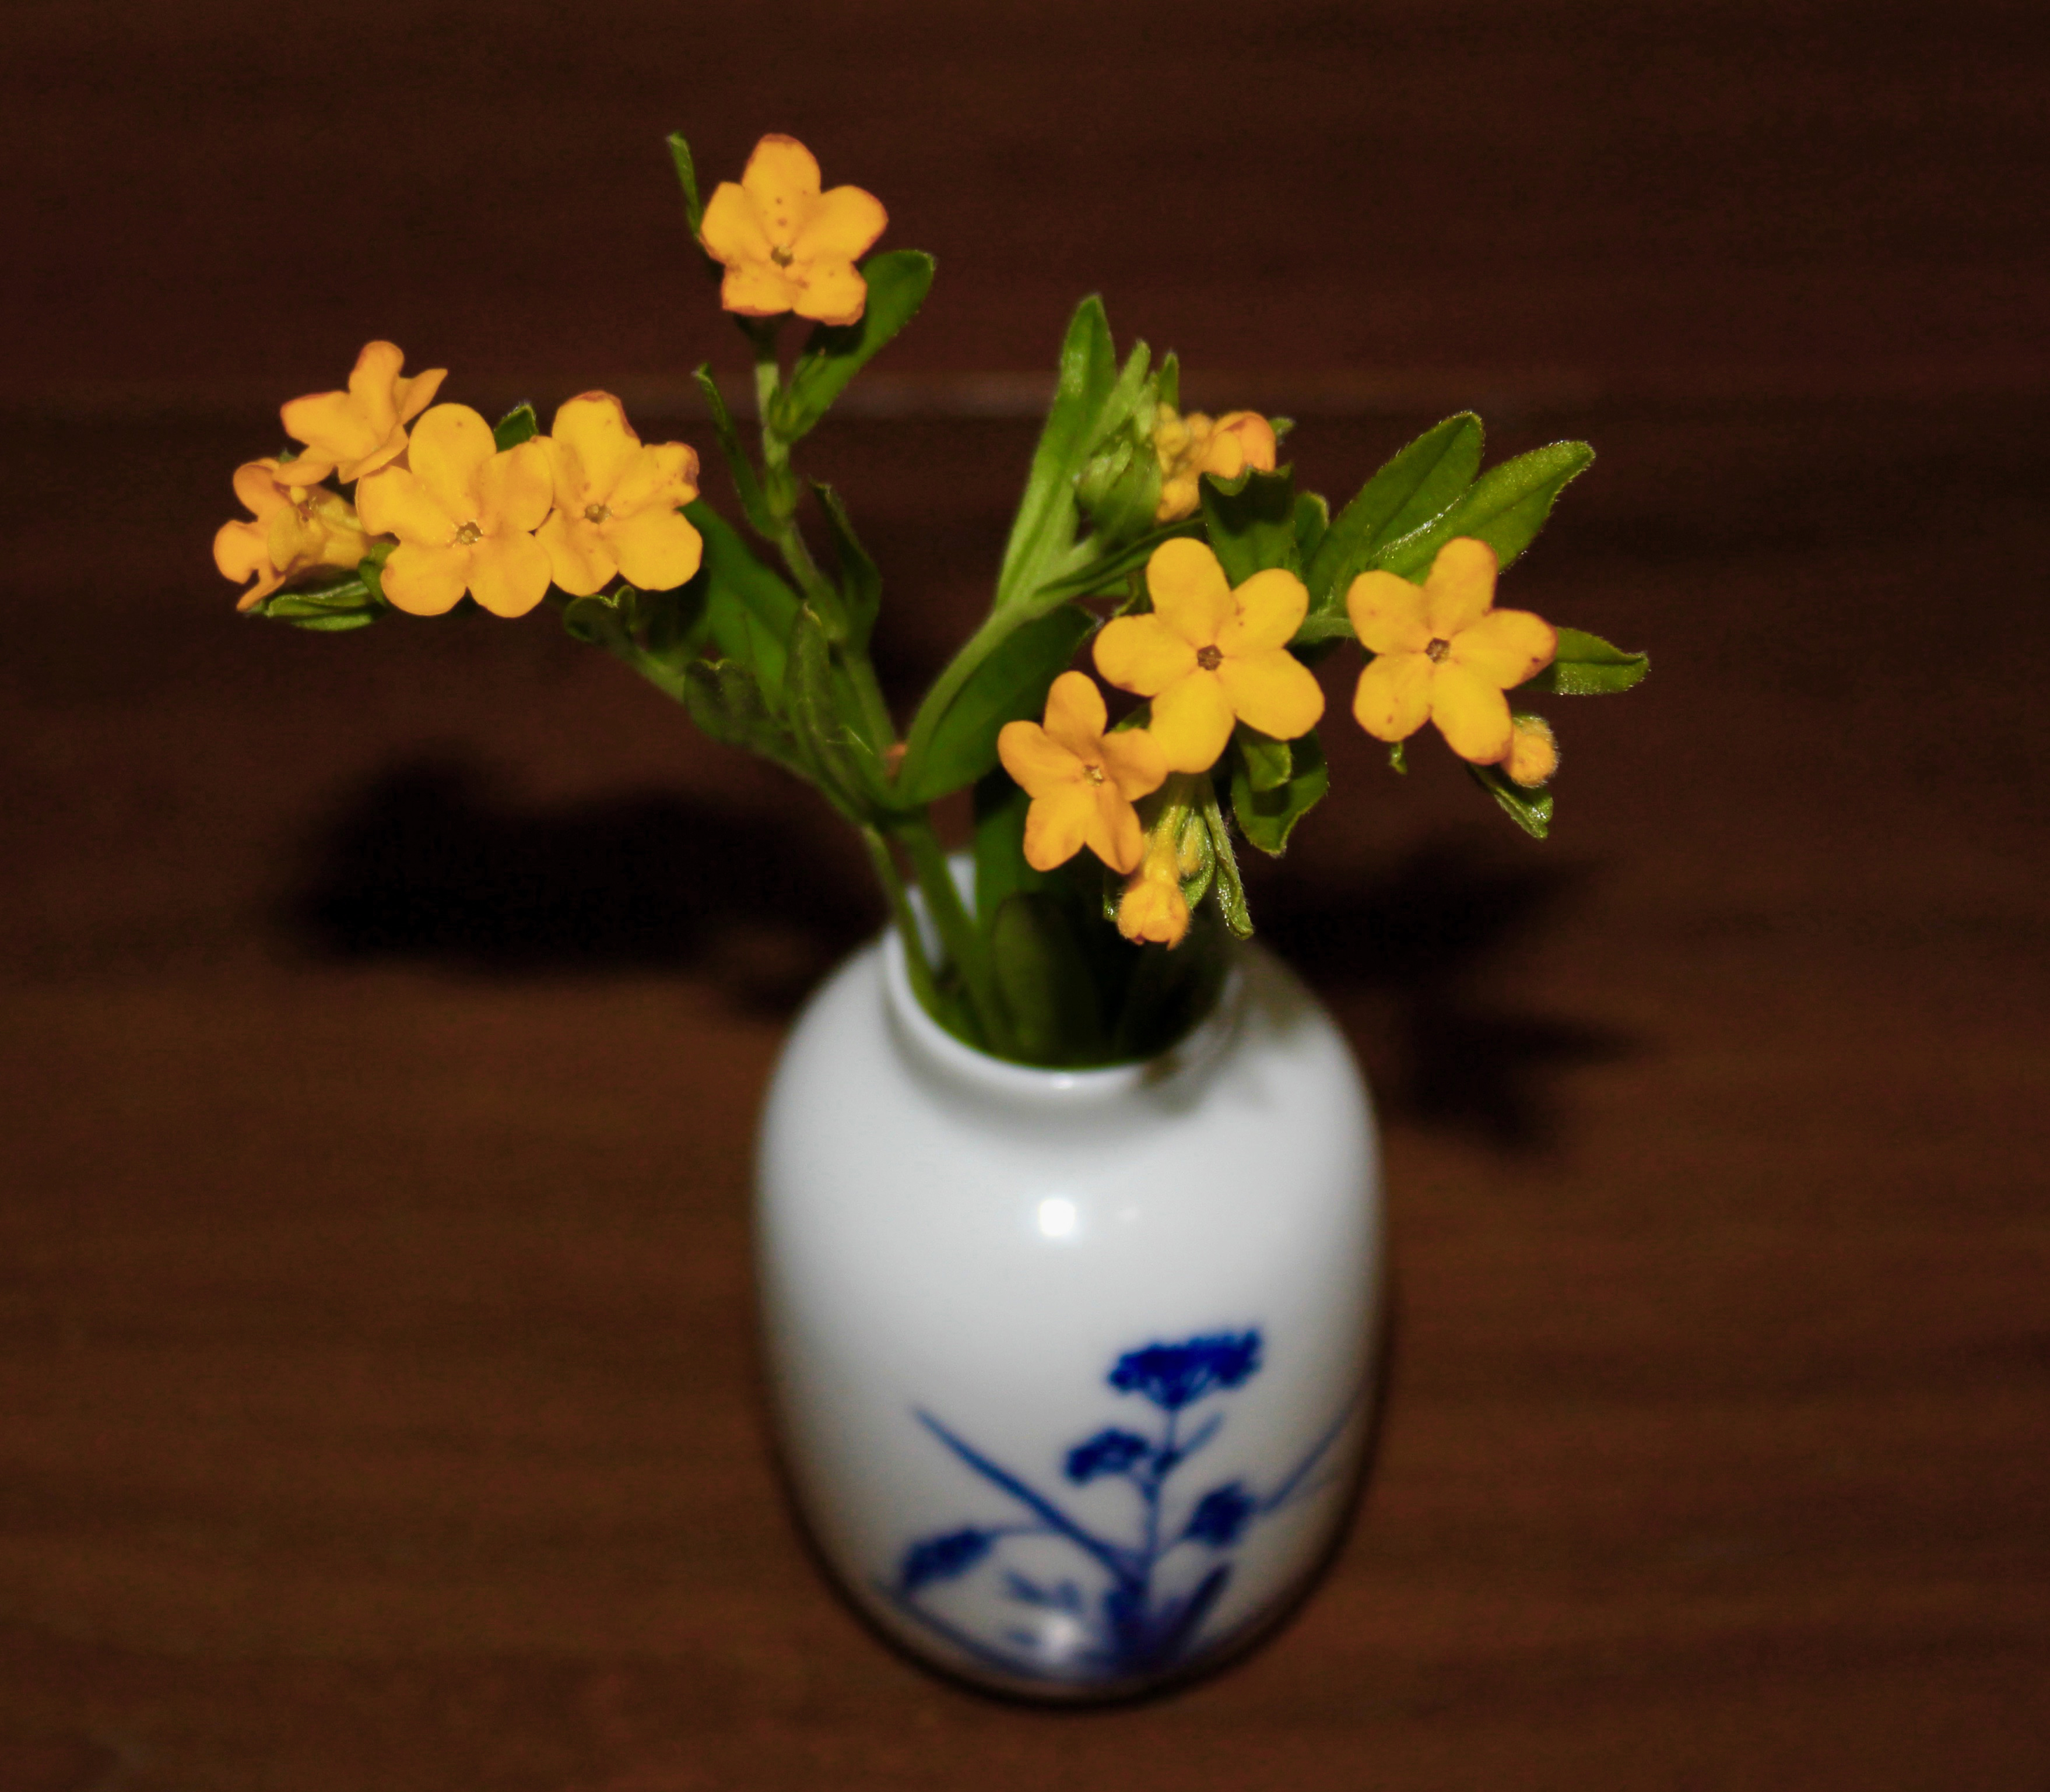 Hoary Puccoon (*Lithospermum canescens*)